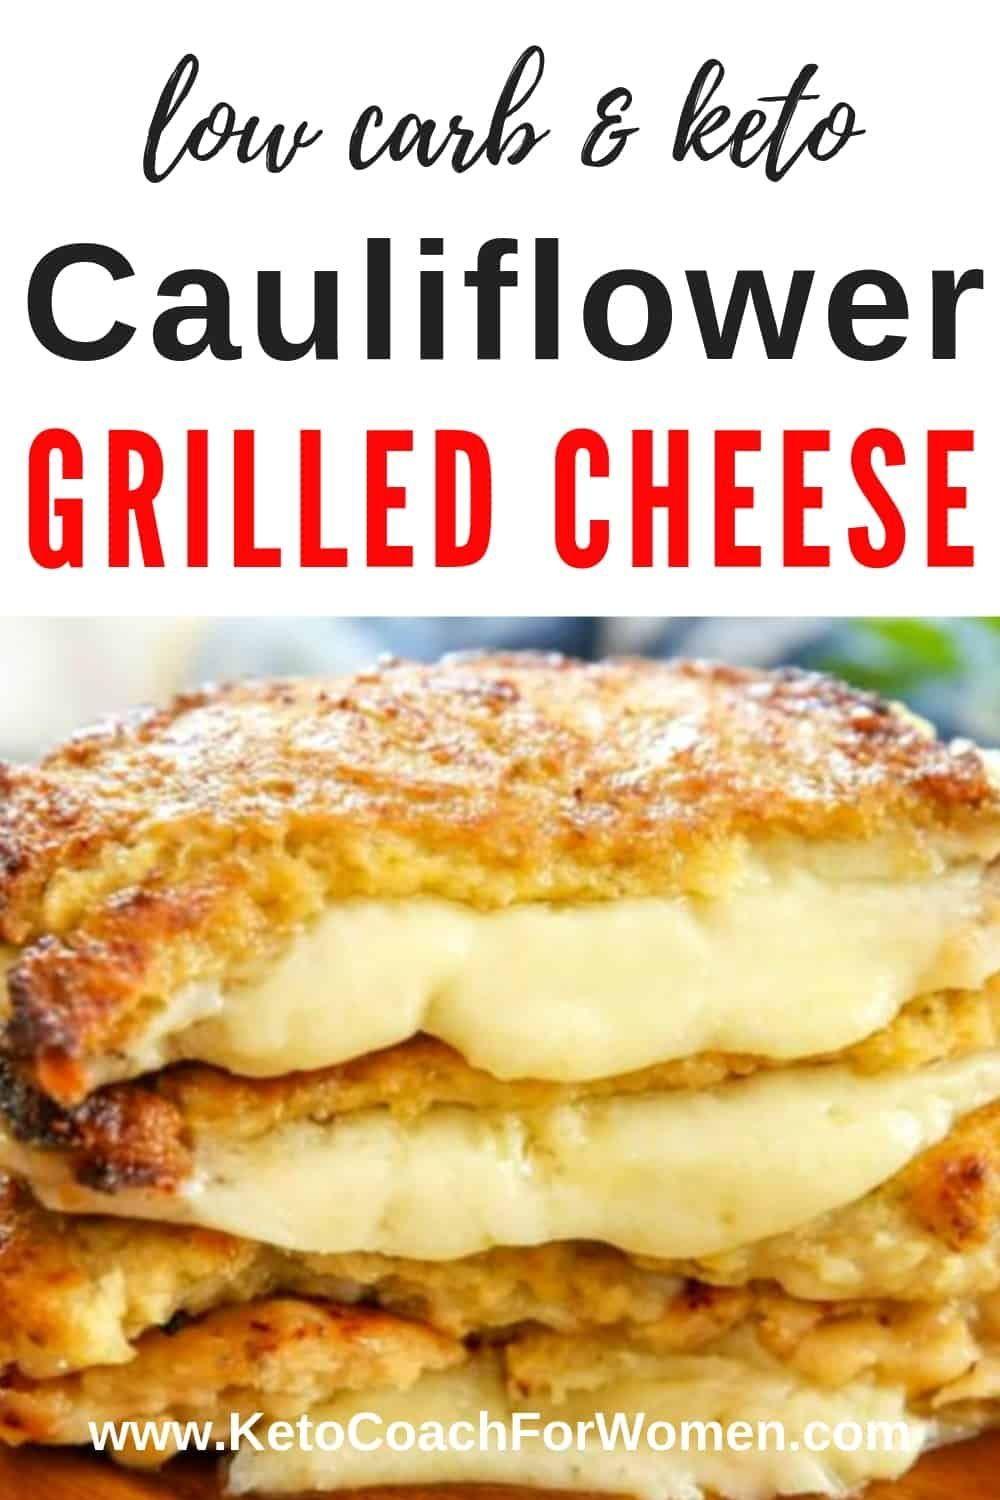 This Low Carb Cauliflower Crusted Grilled Cheese Tastes Like The